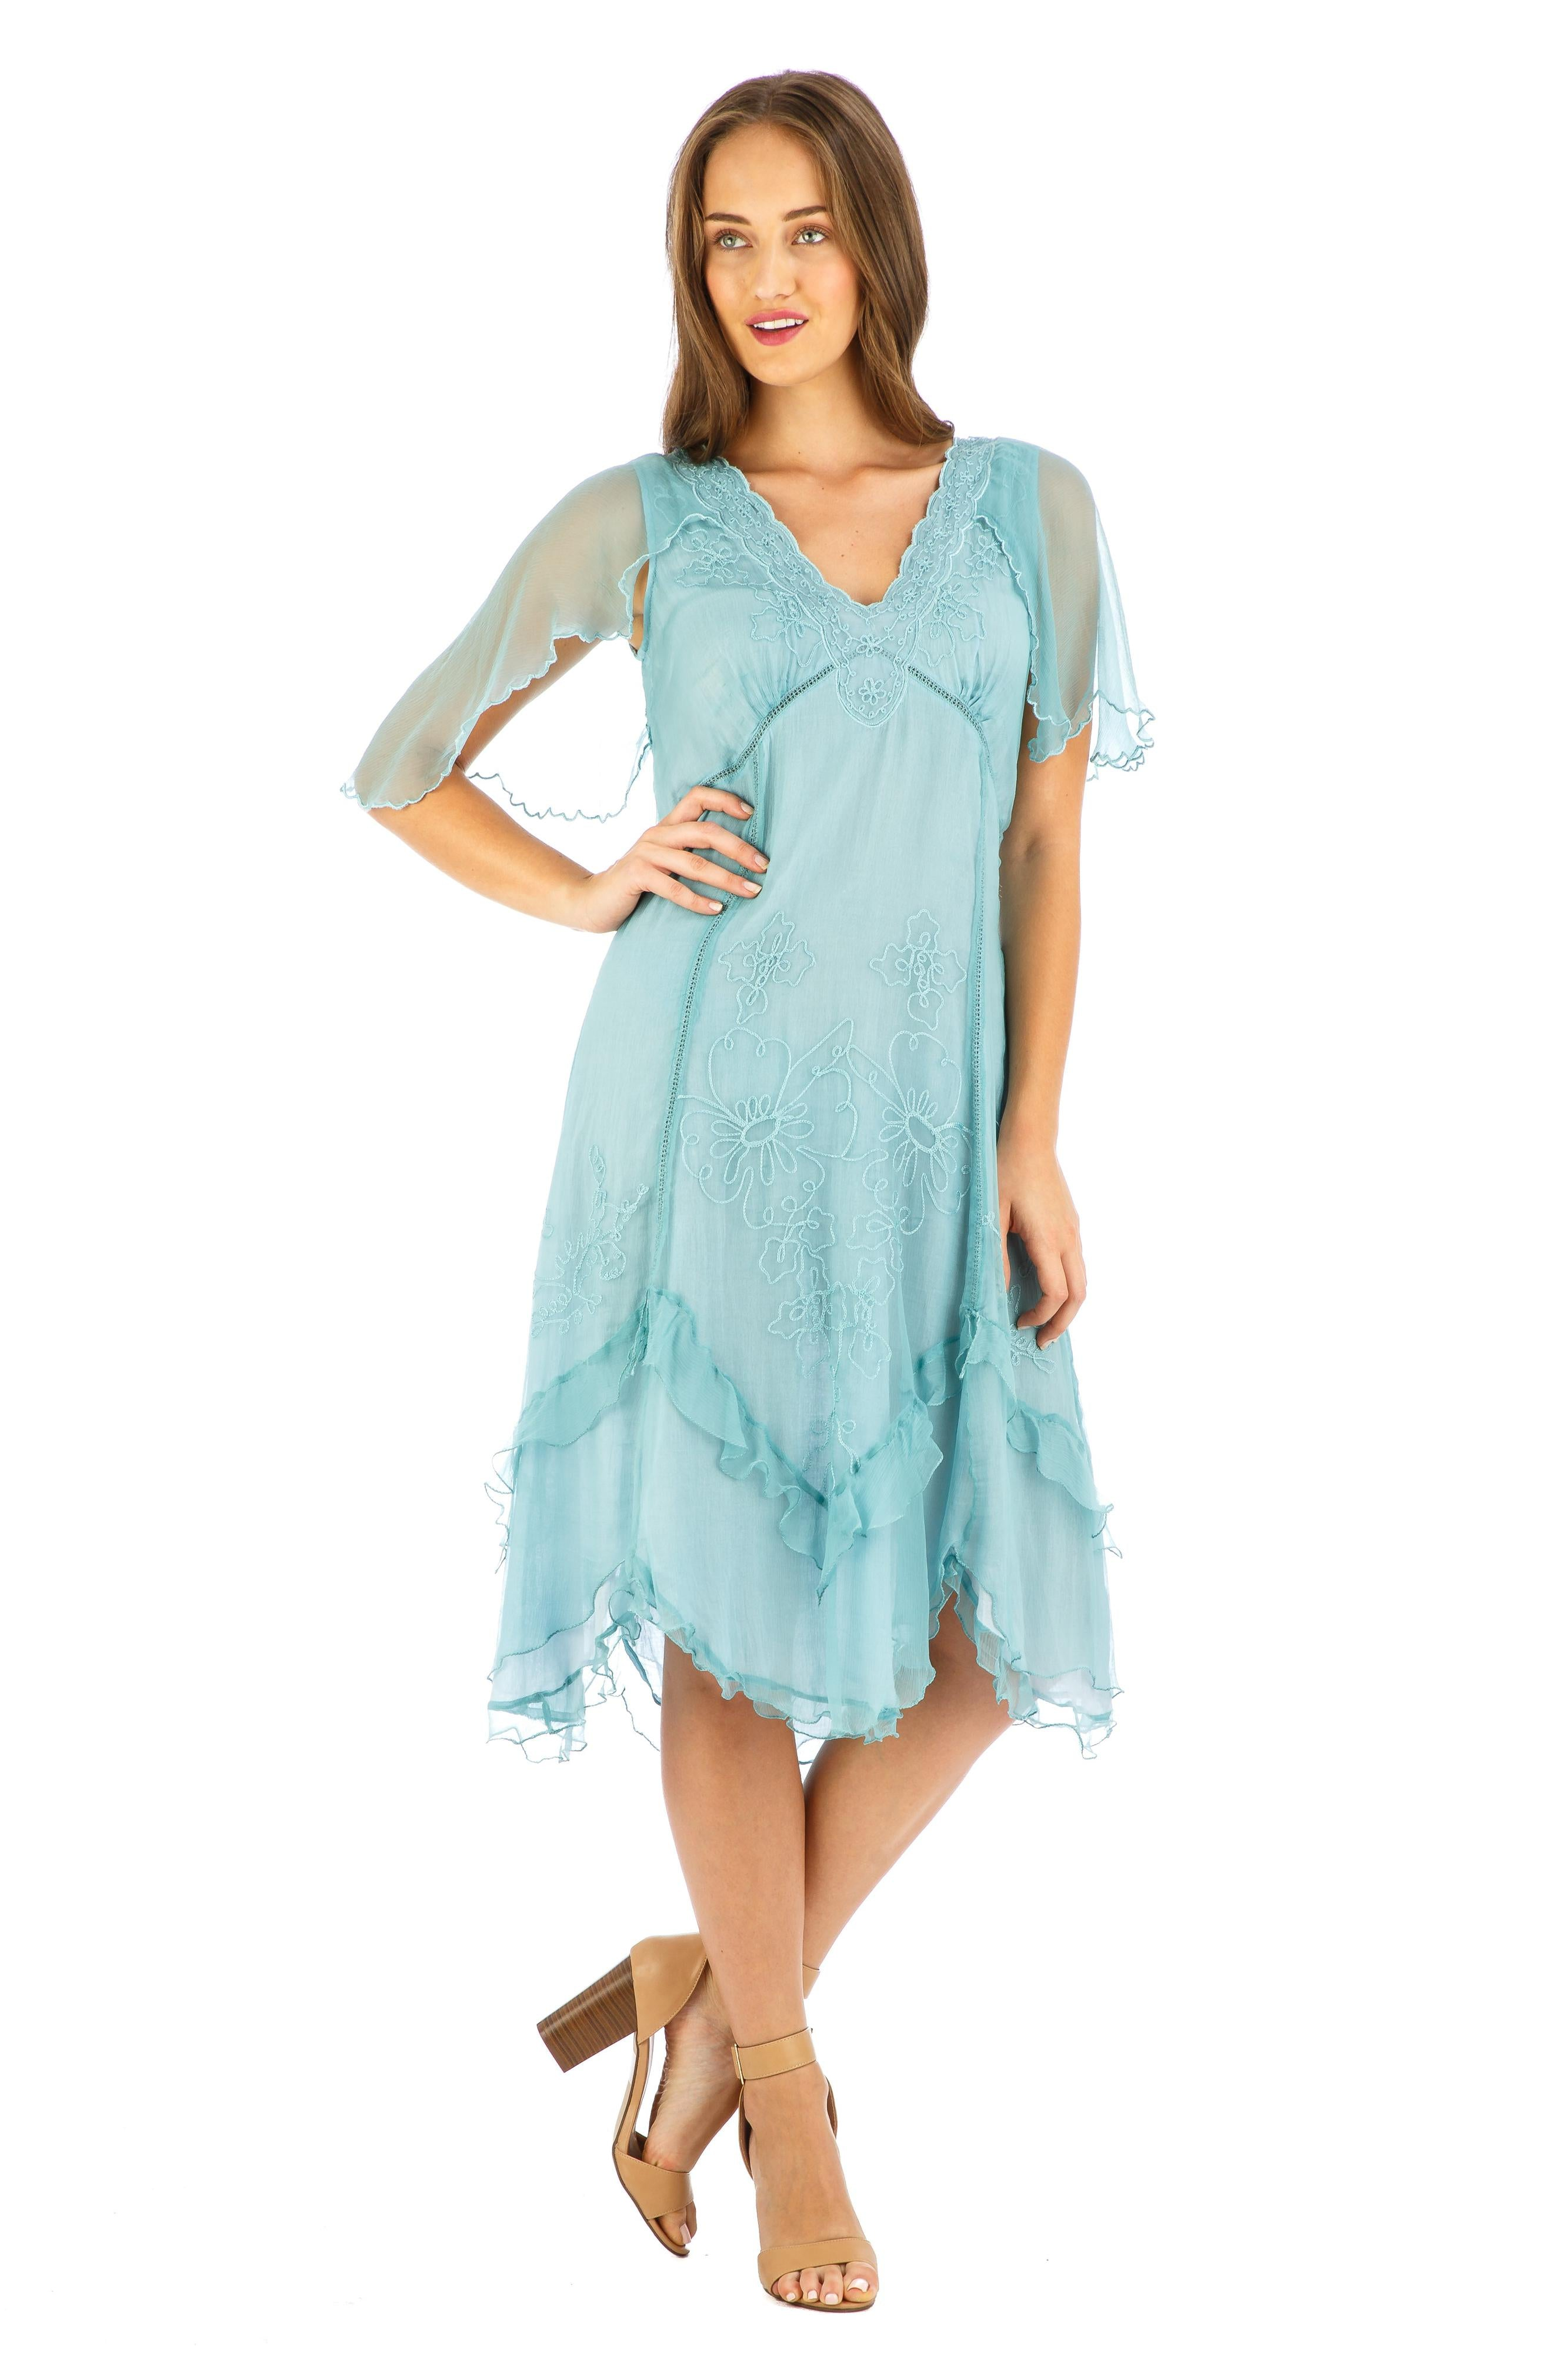 1920s Style Dresses, 20s Dresses Jacqueline Vintage Style Party Dress in Turquoise by Nataya $194.00 AT vintagedancer.com